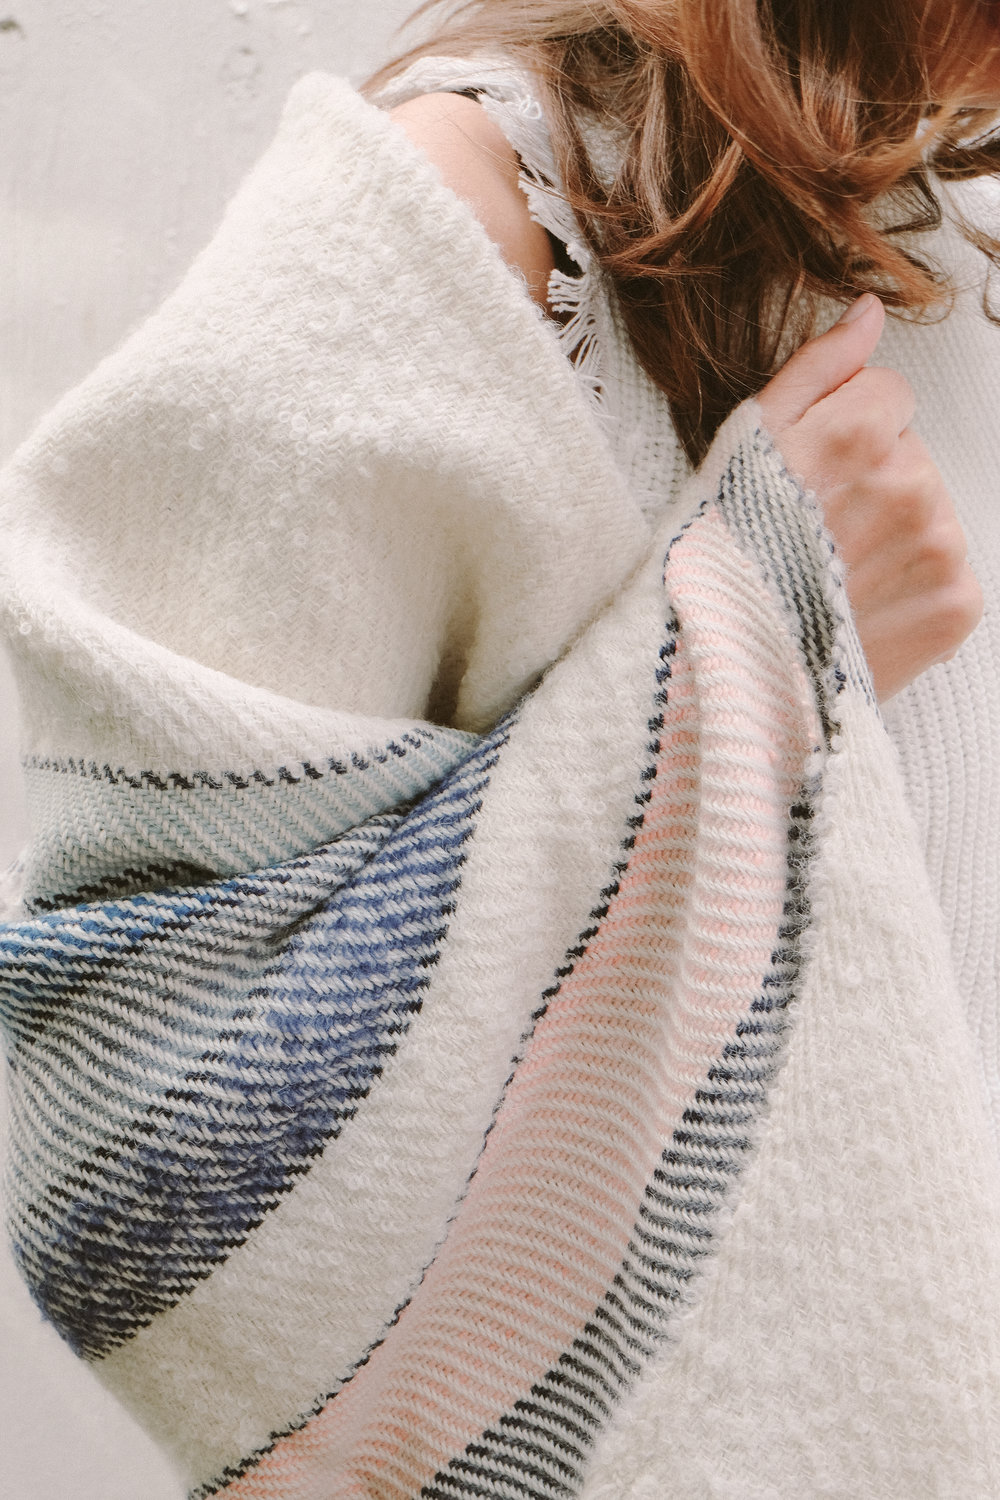 Leah wears: Alima throw/wrap | hand woven in Peru |  SHOP HERE